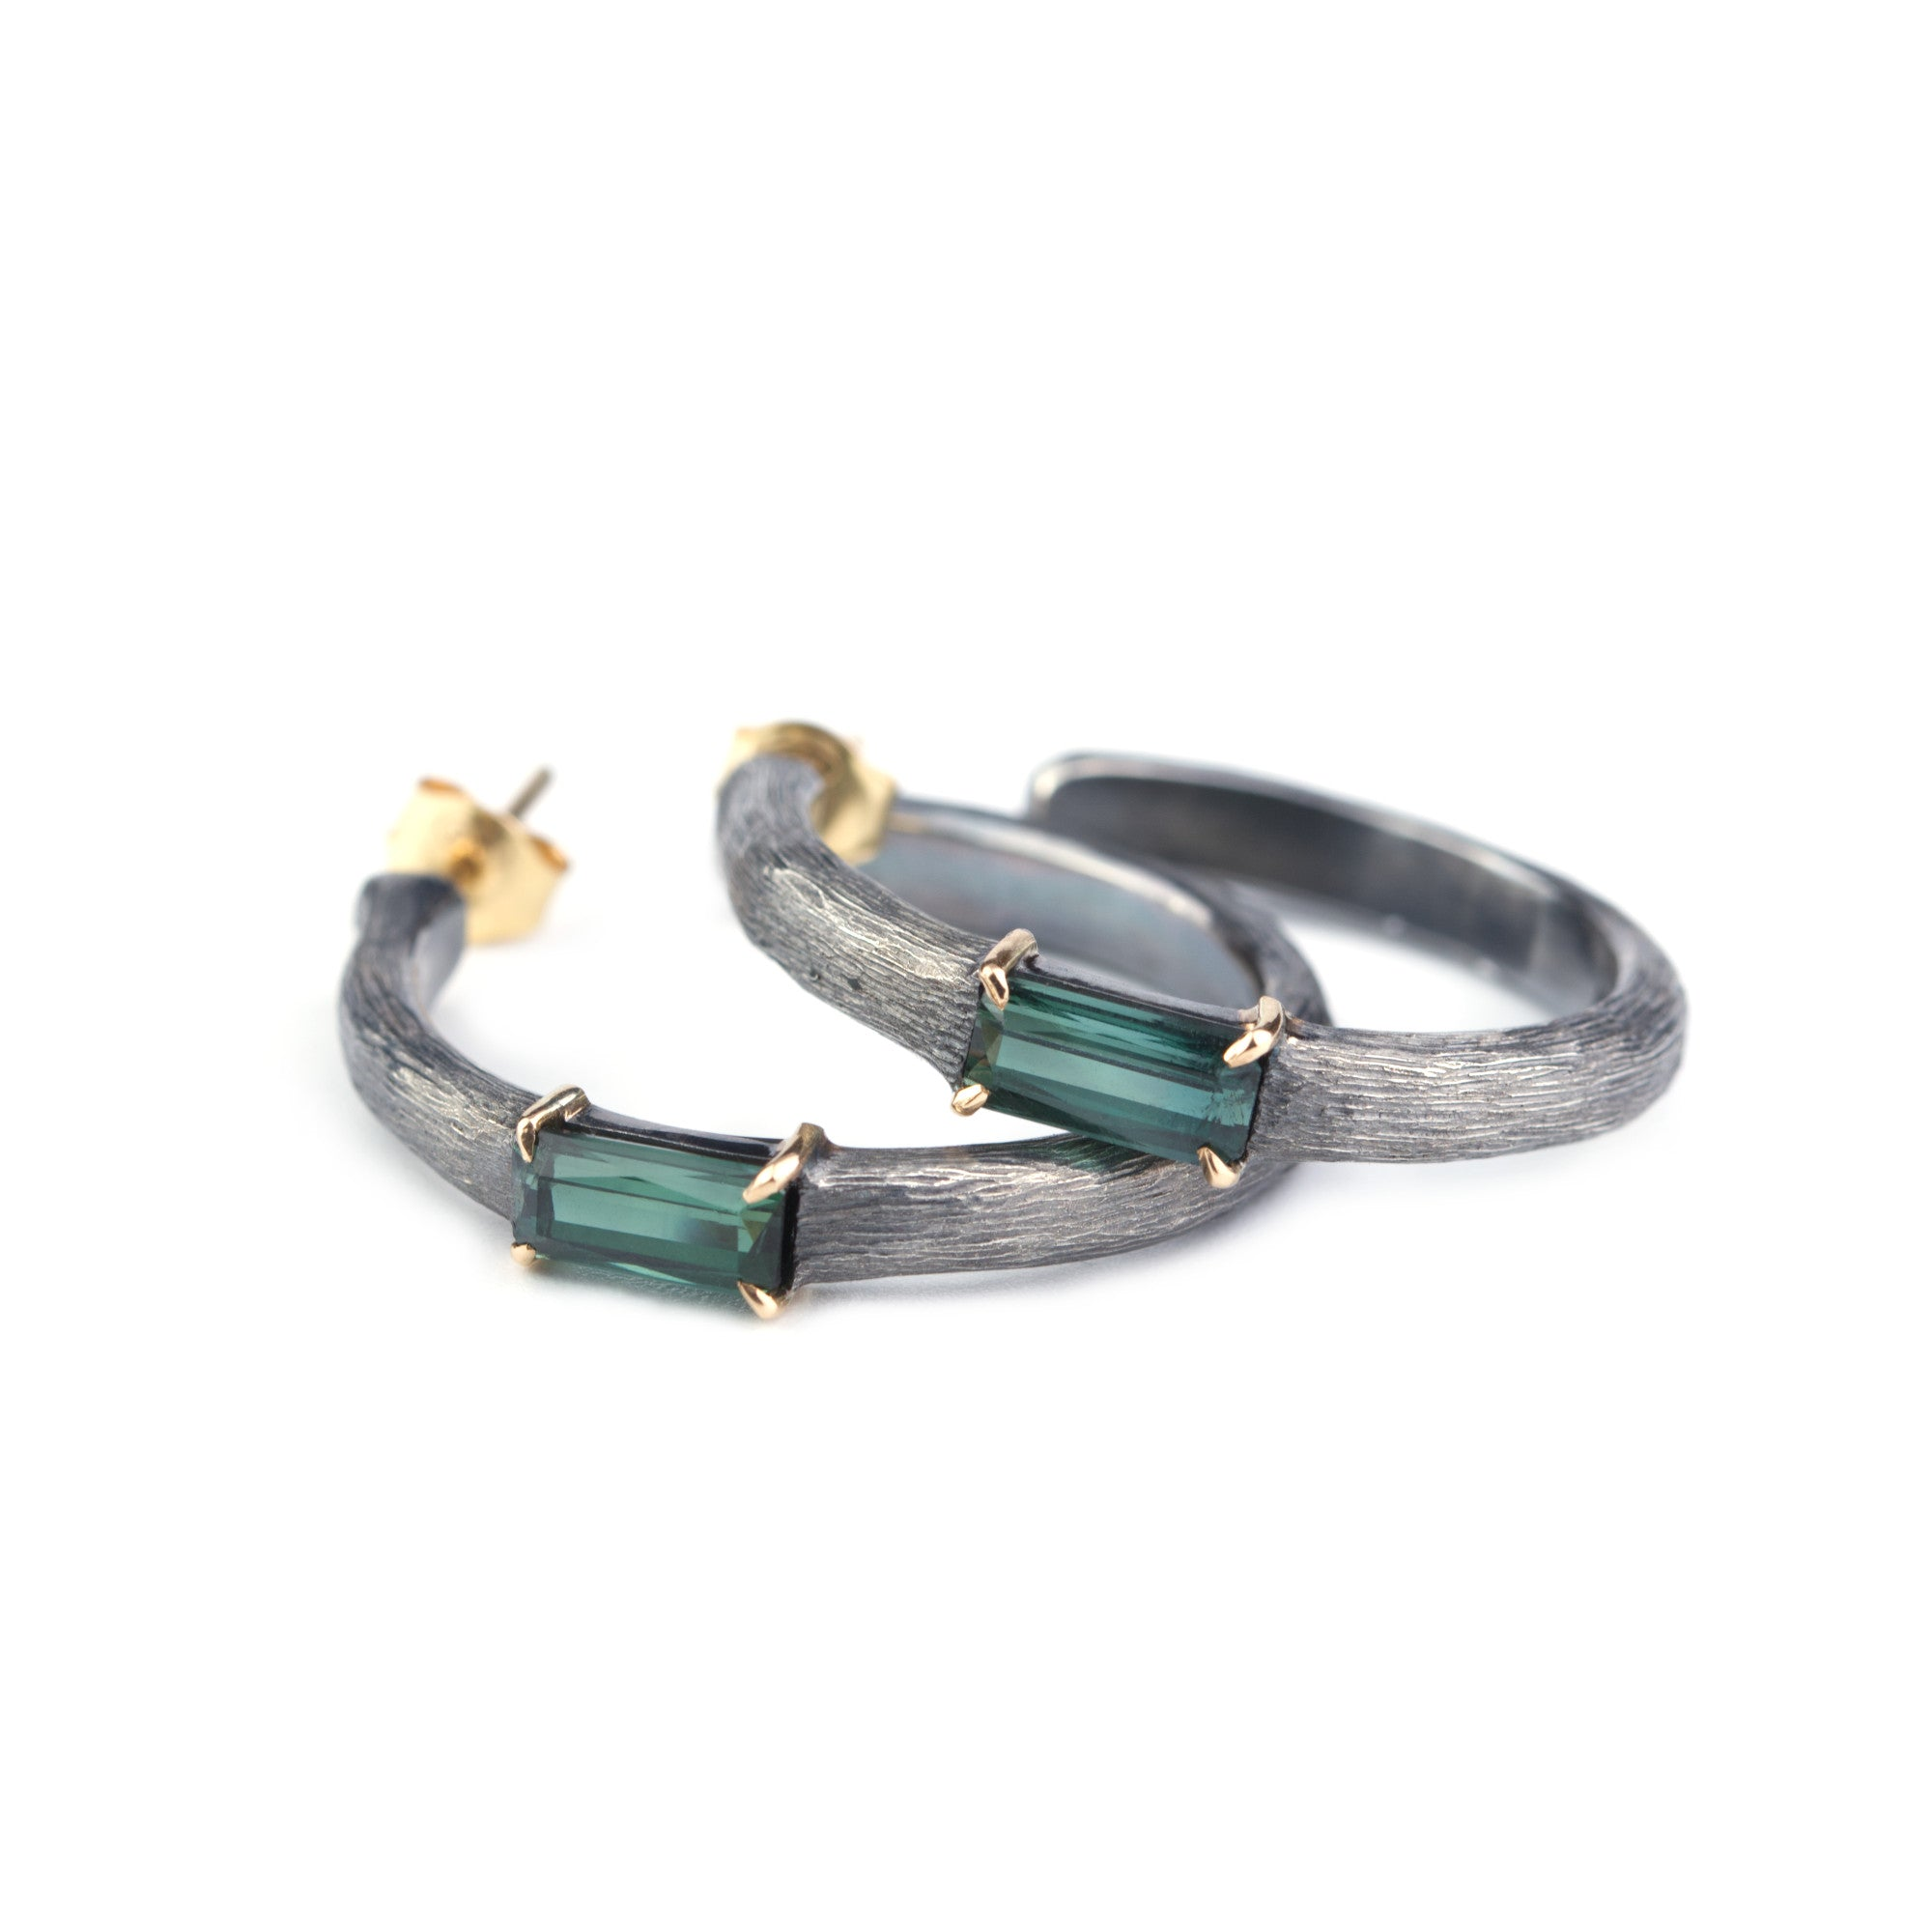 Green tourmaline hoop earrings made in sterling silver and 18k gold by Ewa Z. Sleziona